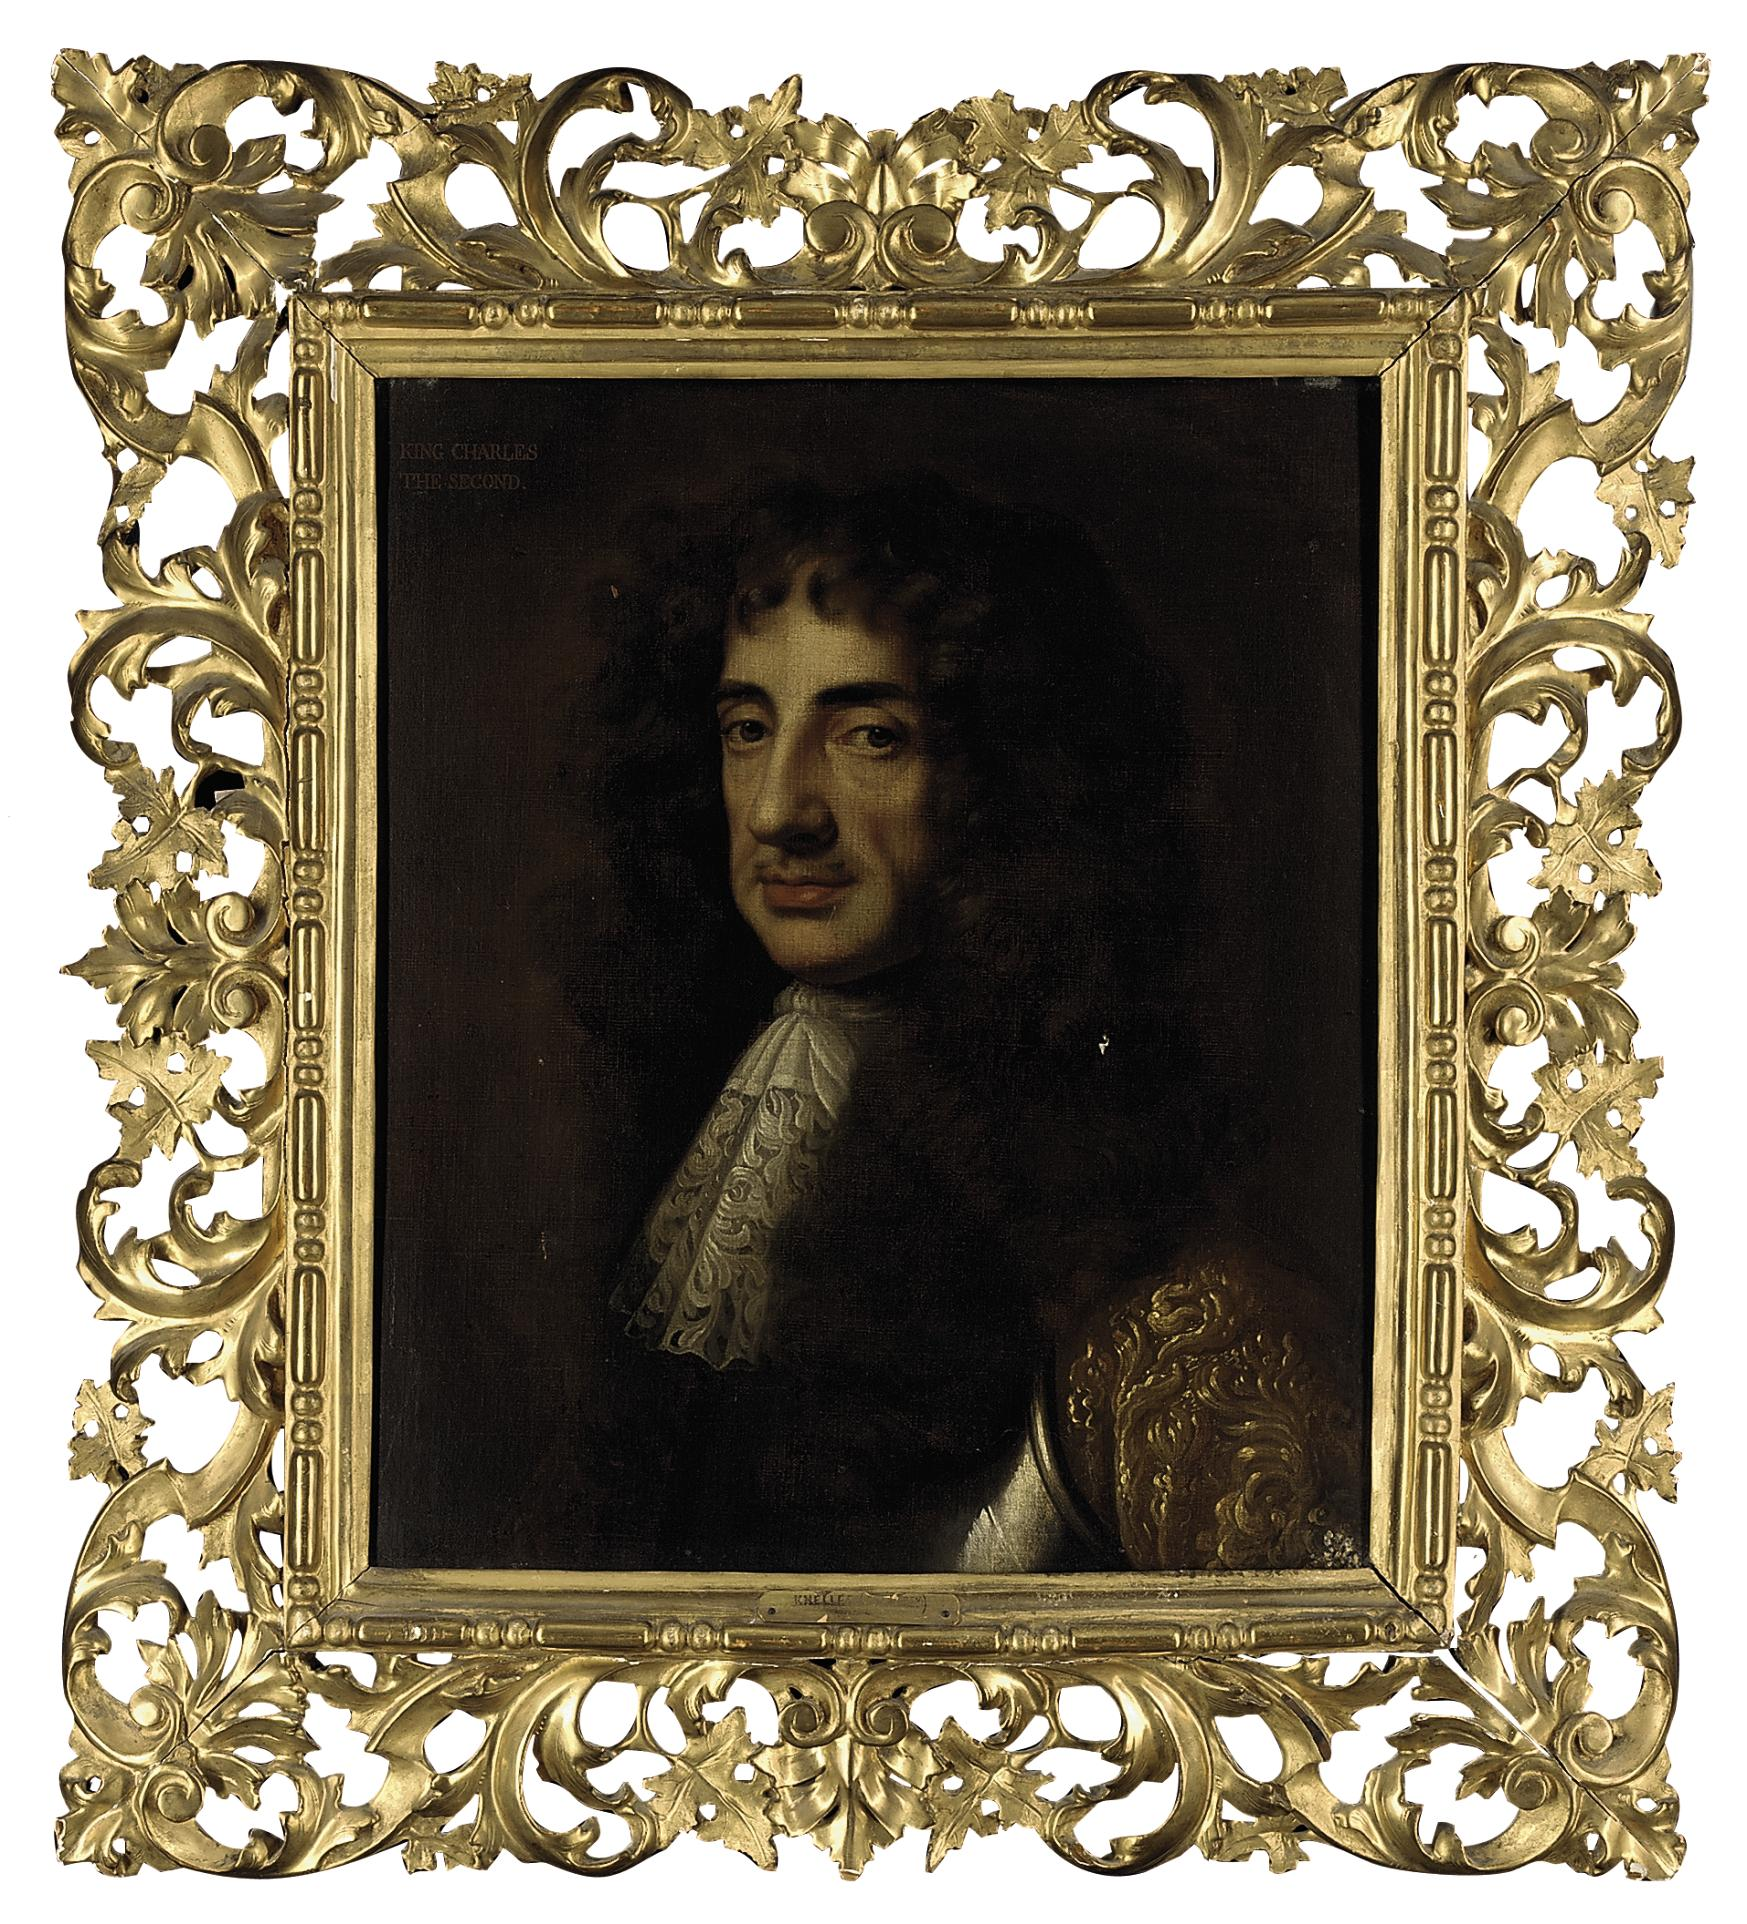 Portrait of King Charles II, bust-length, wearing a breastplate with a gold-embroidered coat and lace cravat